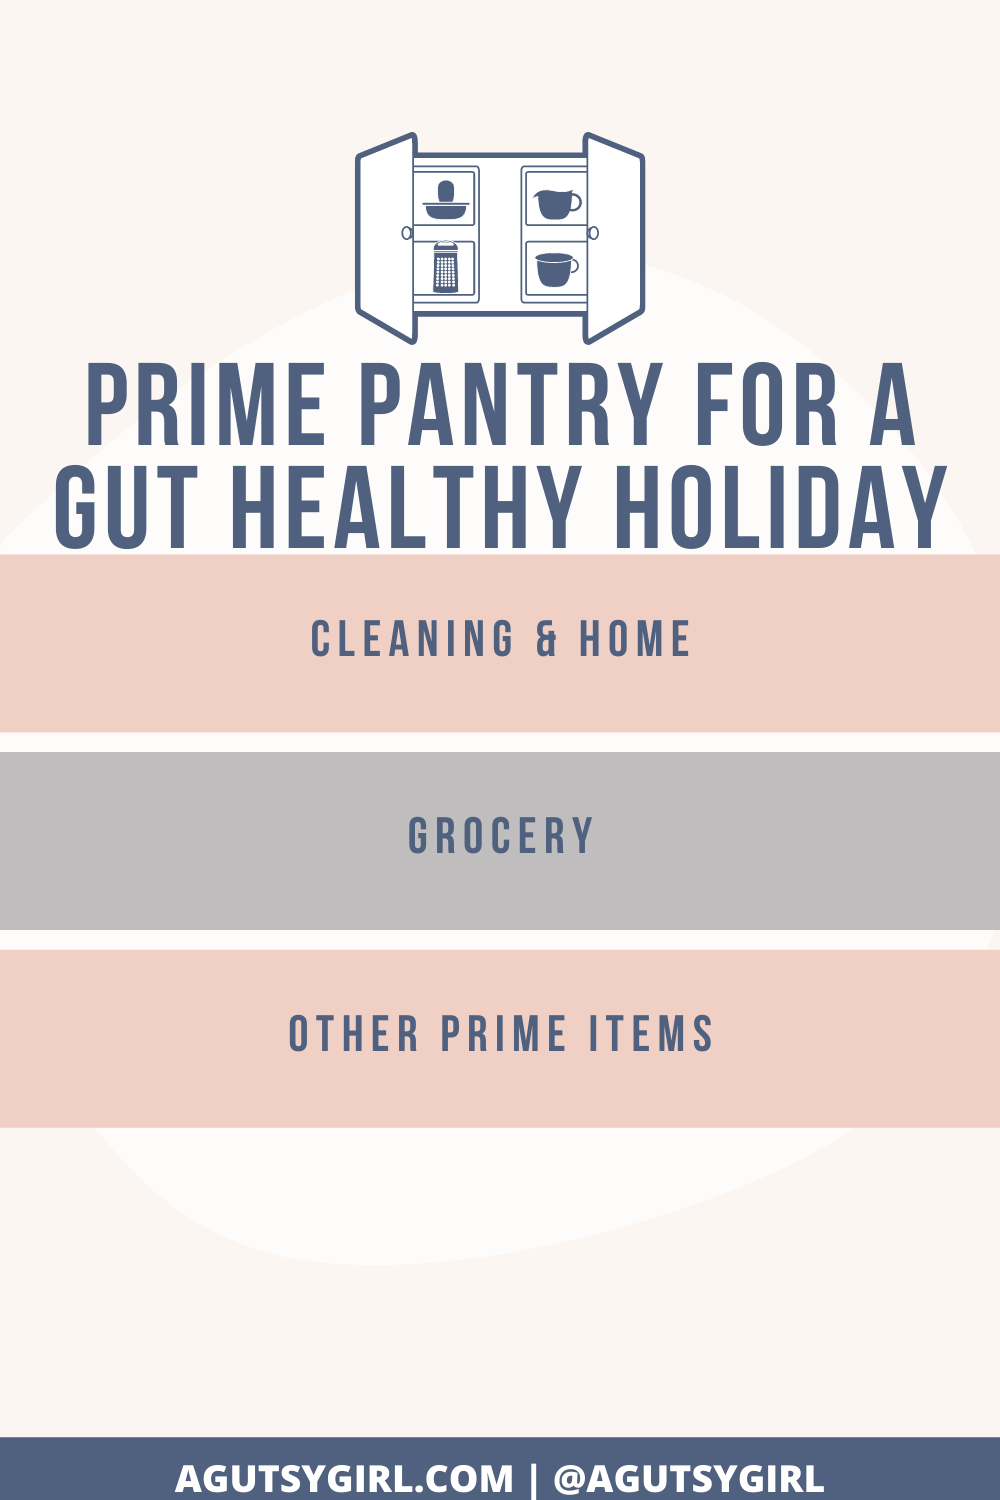 Prime Pantry for a Gut Healthy Holiday agutsygirl.com #prime #amazonprime #primepantry #guthealth #holidayplanning